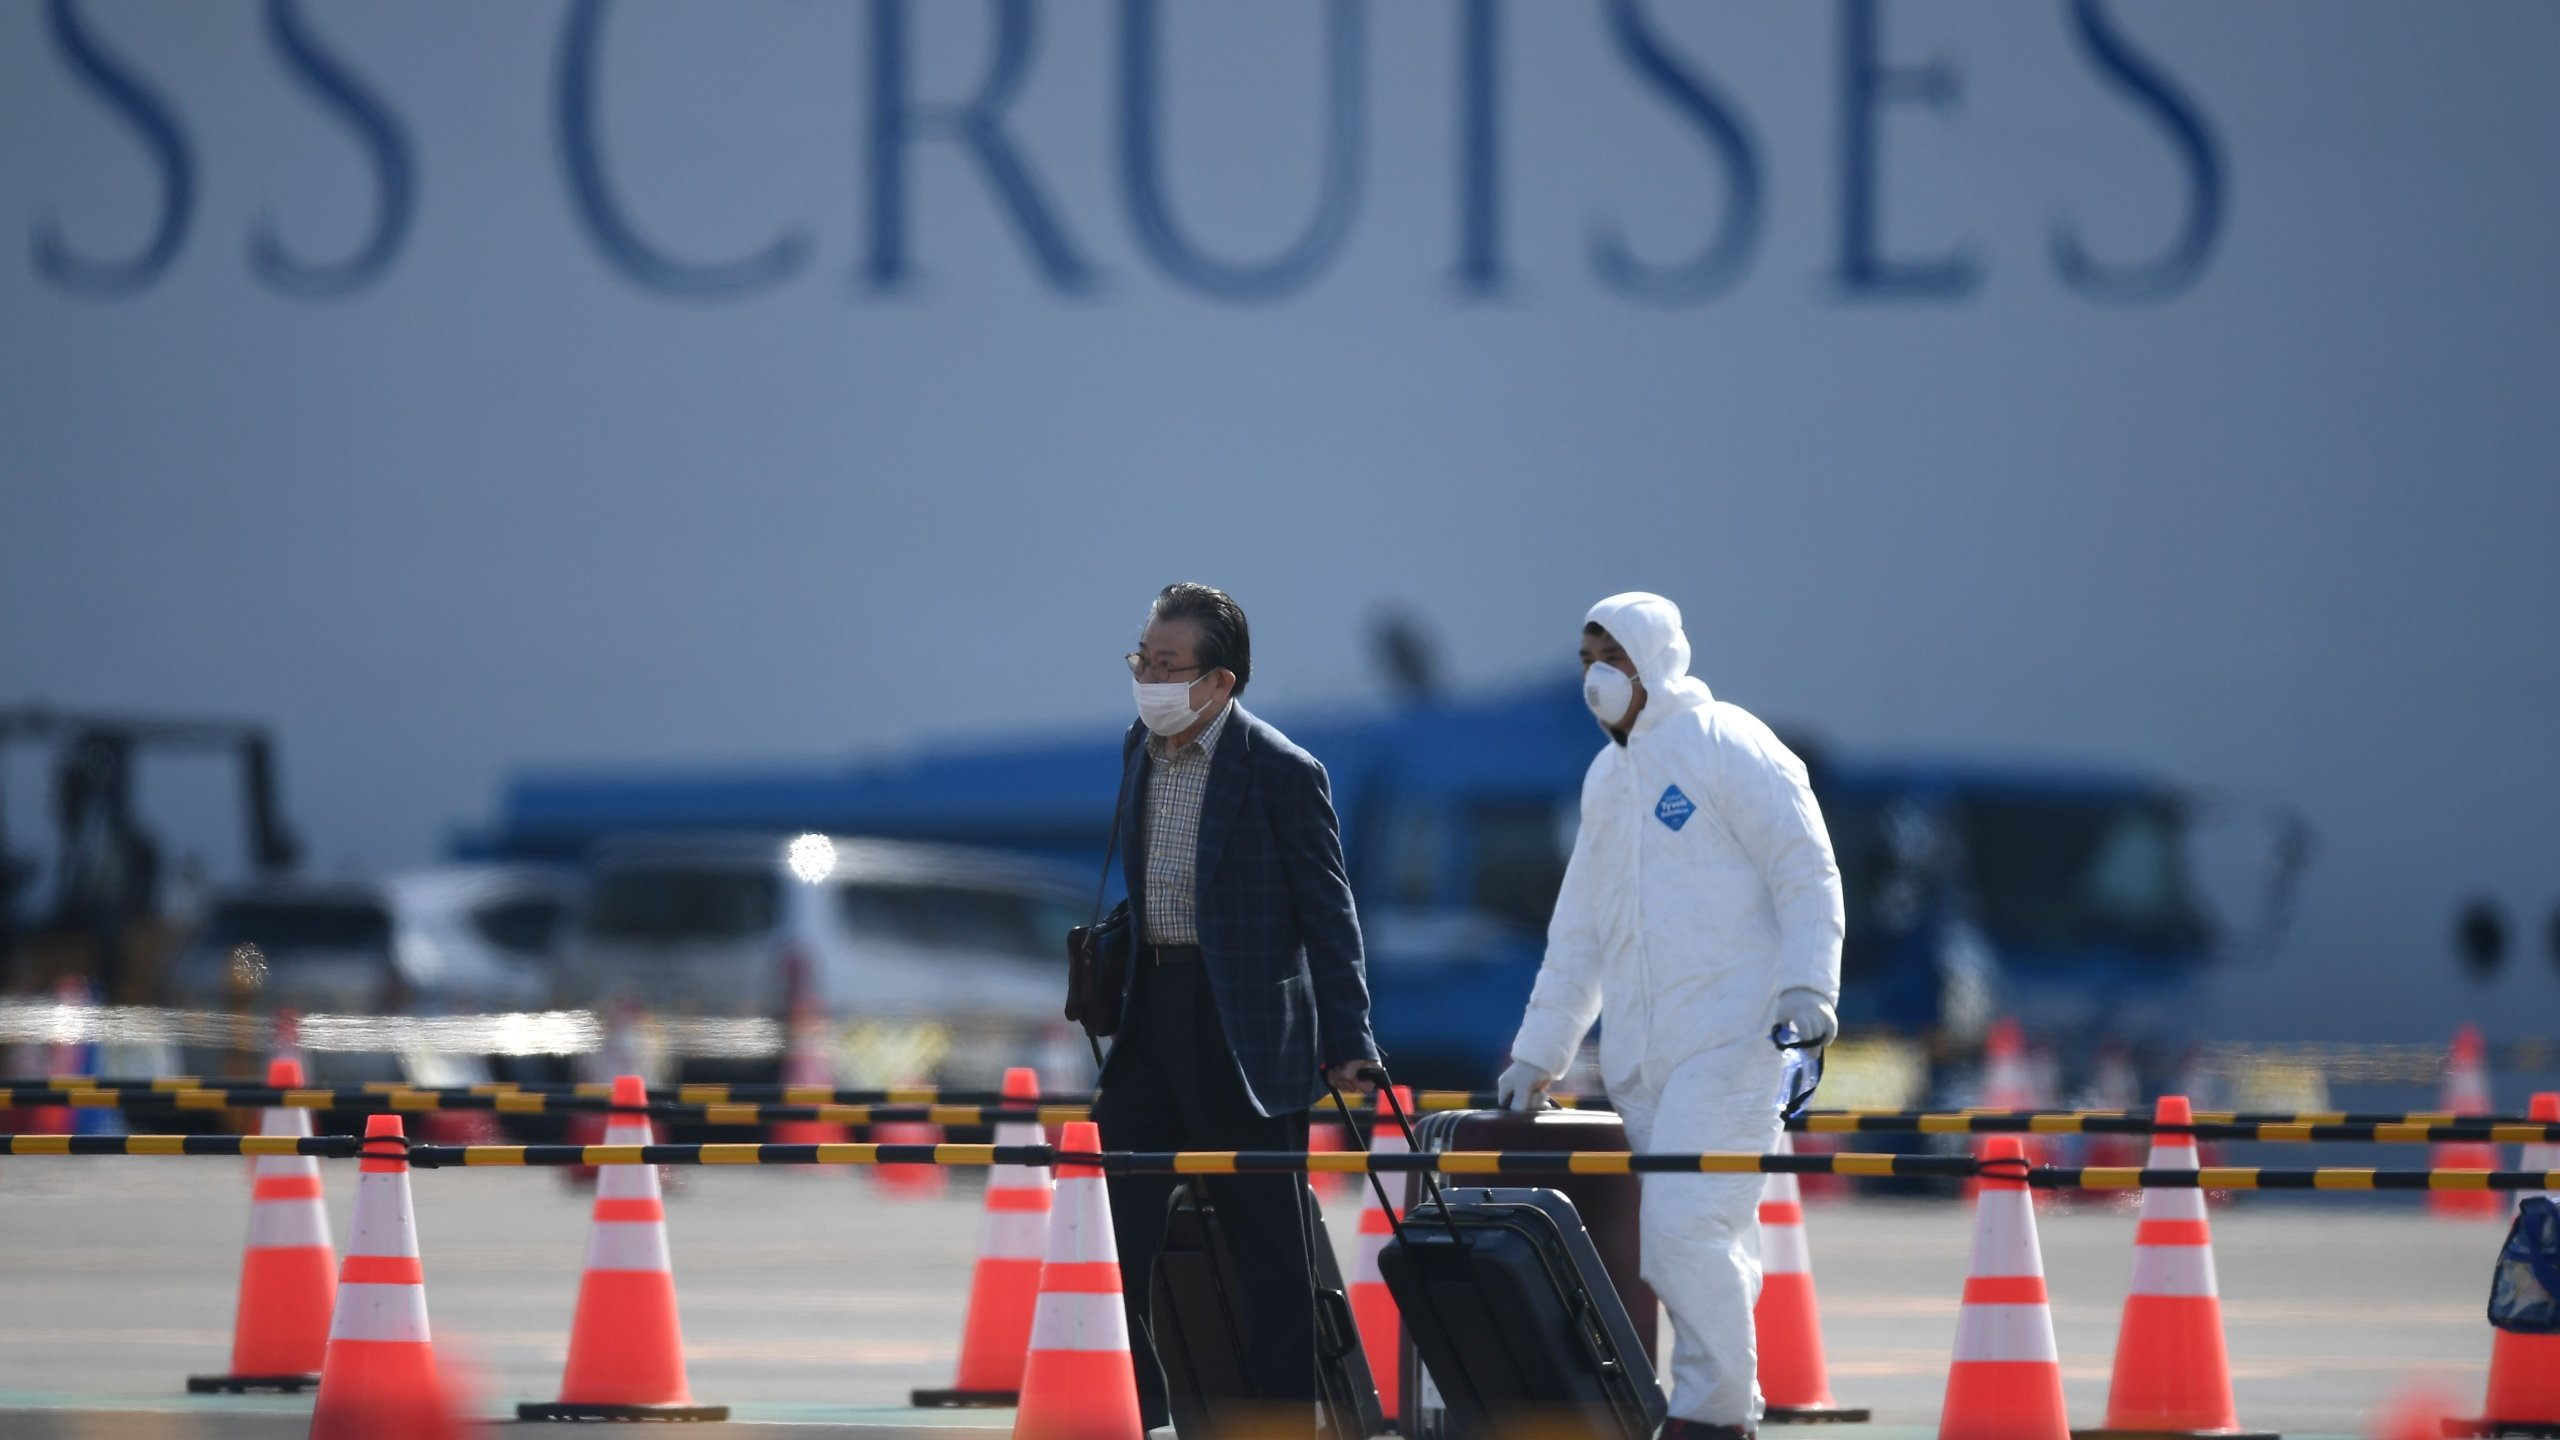 A passenger disembarks from the Diamond Princess cruise ship at the Daikoku Pier Cruise Terminal in Yokohama on Feb. 19, 2020. (Credit: CHARLY TRIBALLEAU/AFP via Getty Images)